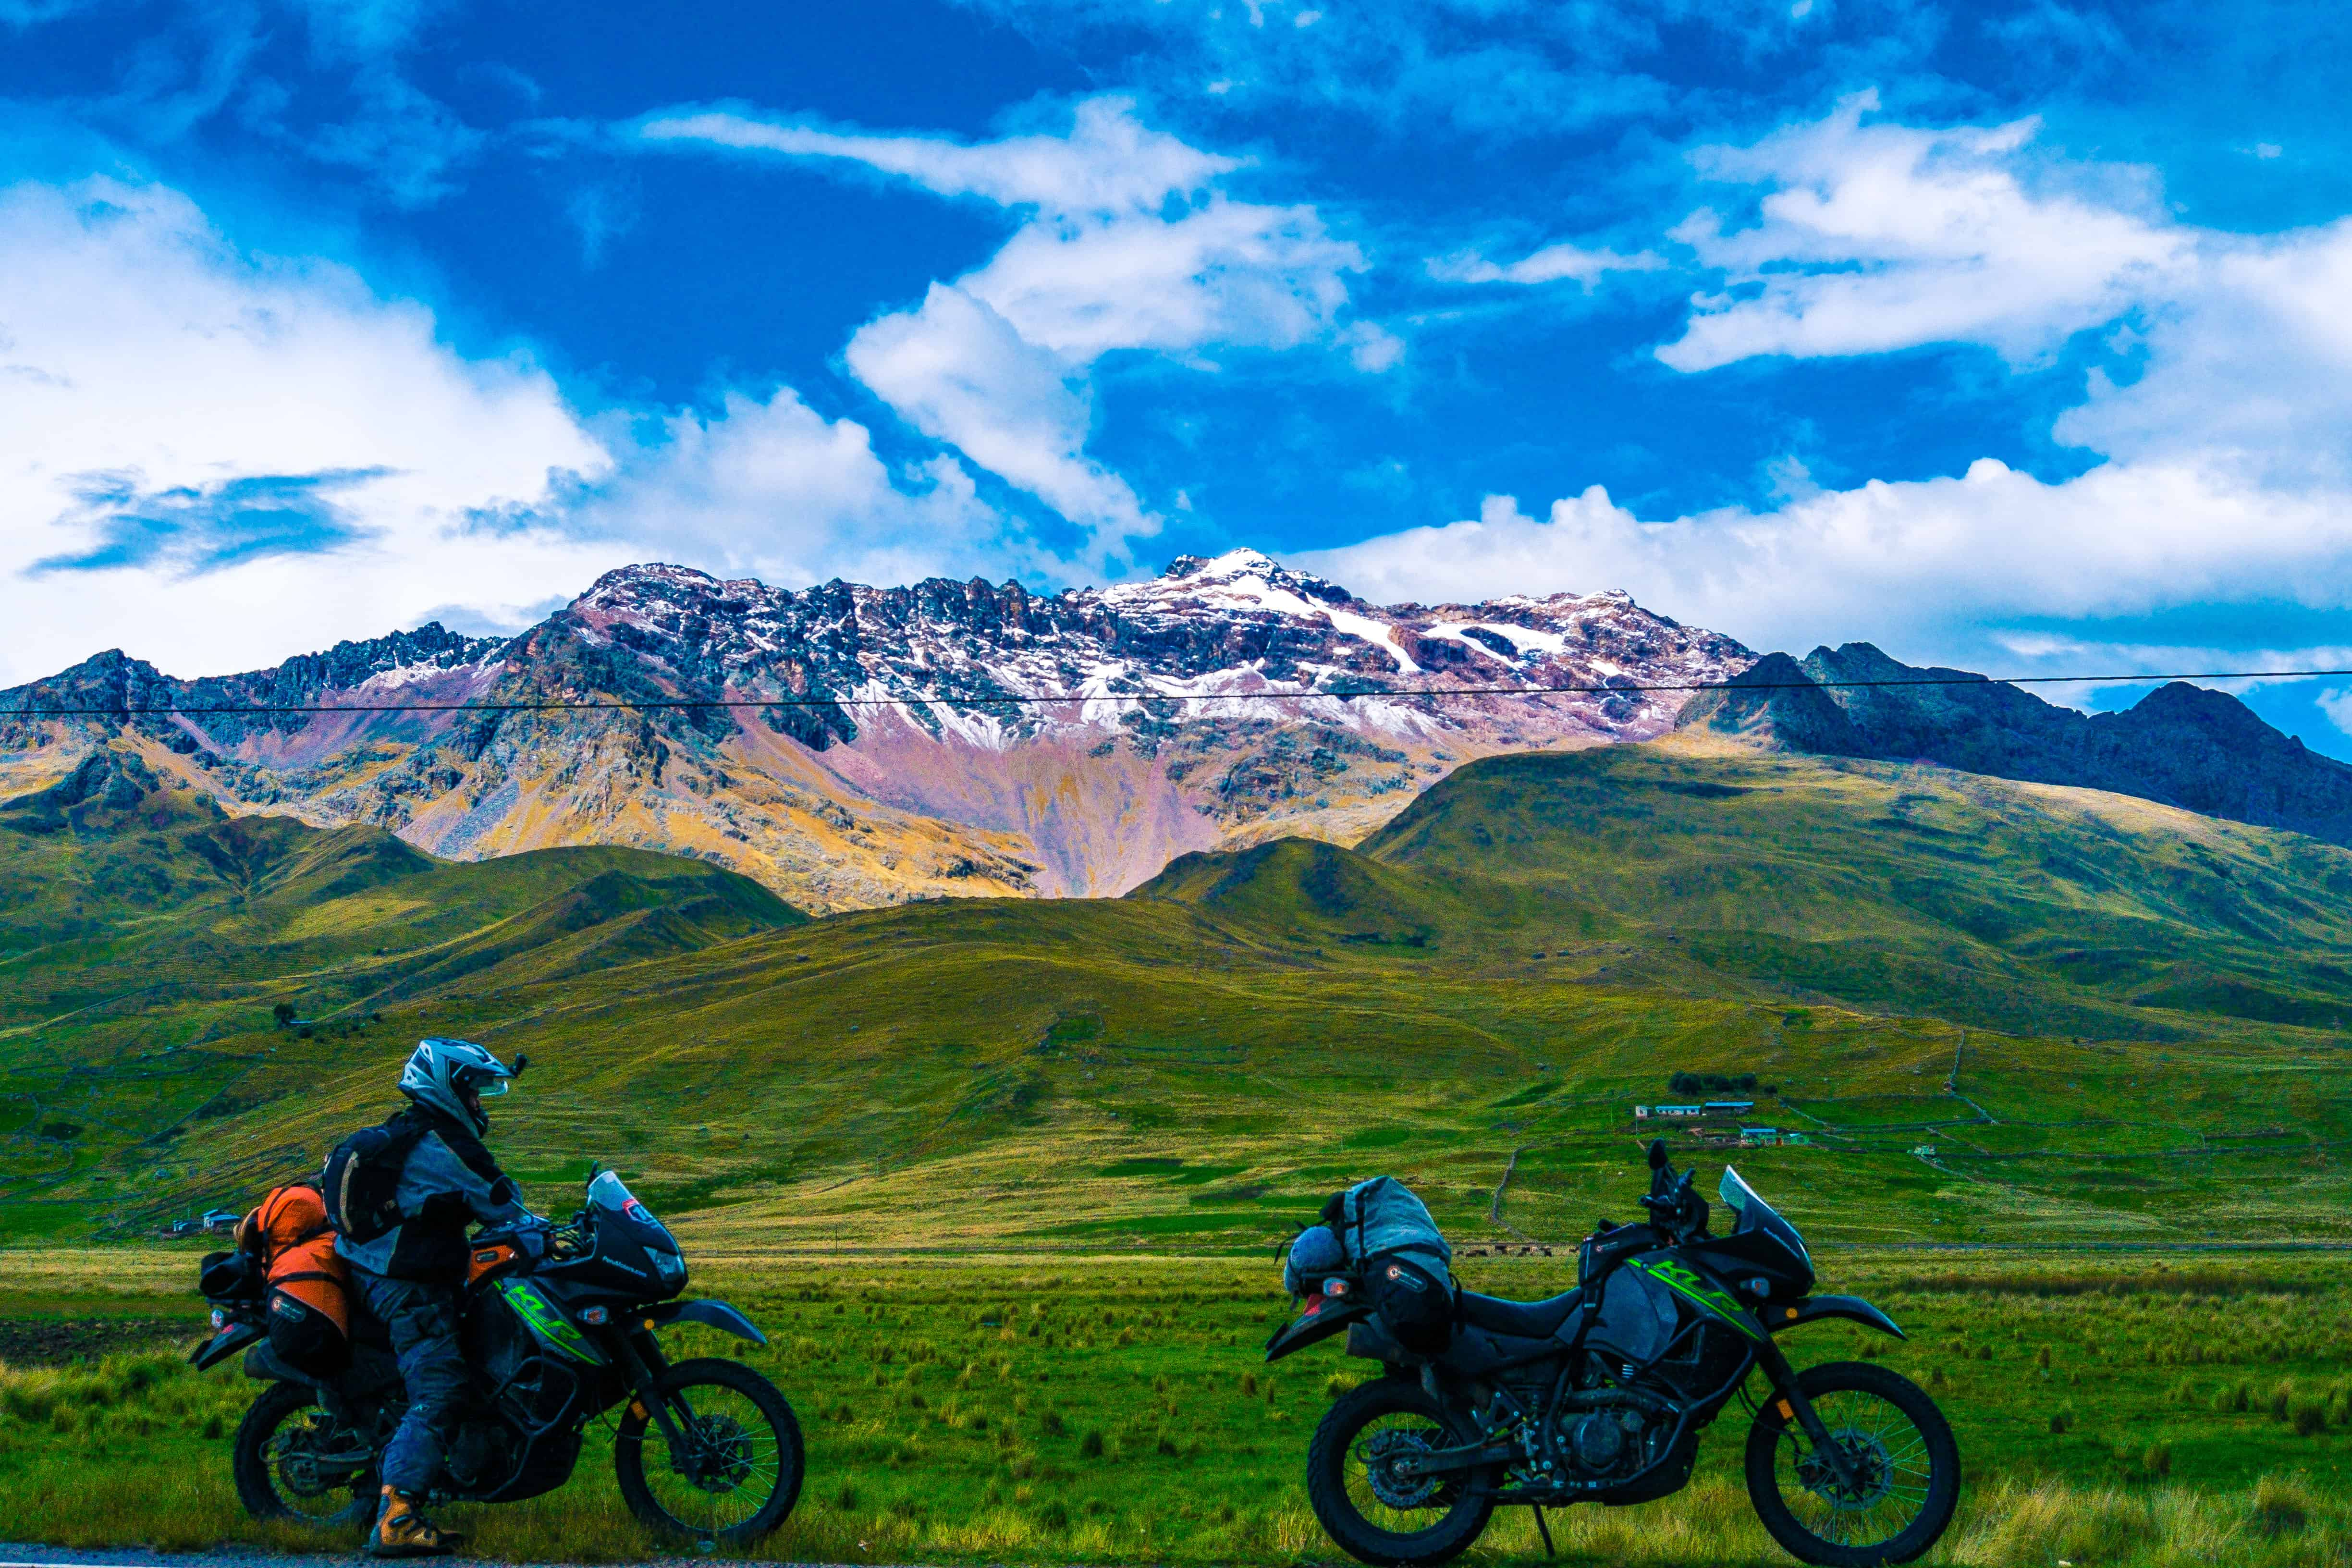 Two KLR650 motorcycles in front of a snow capped mountain in the Andes, Peru